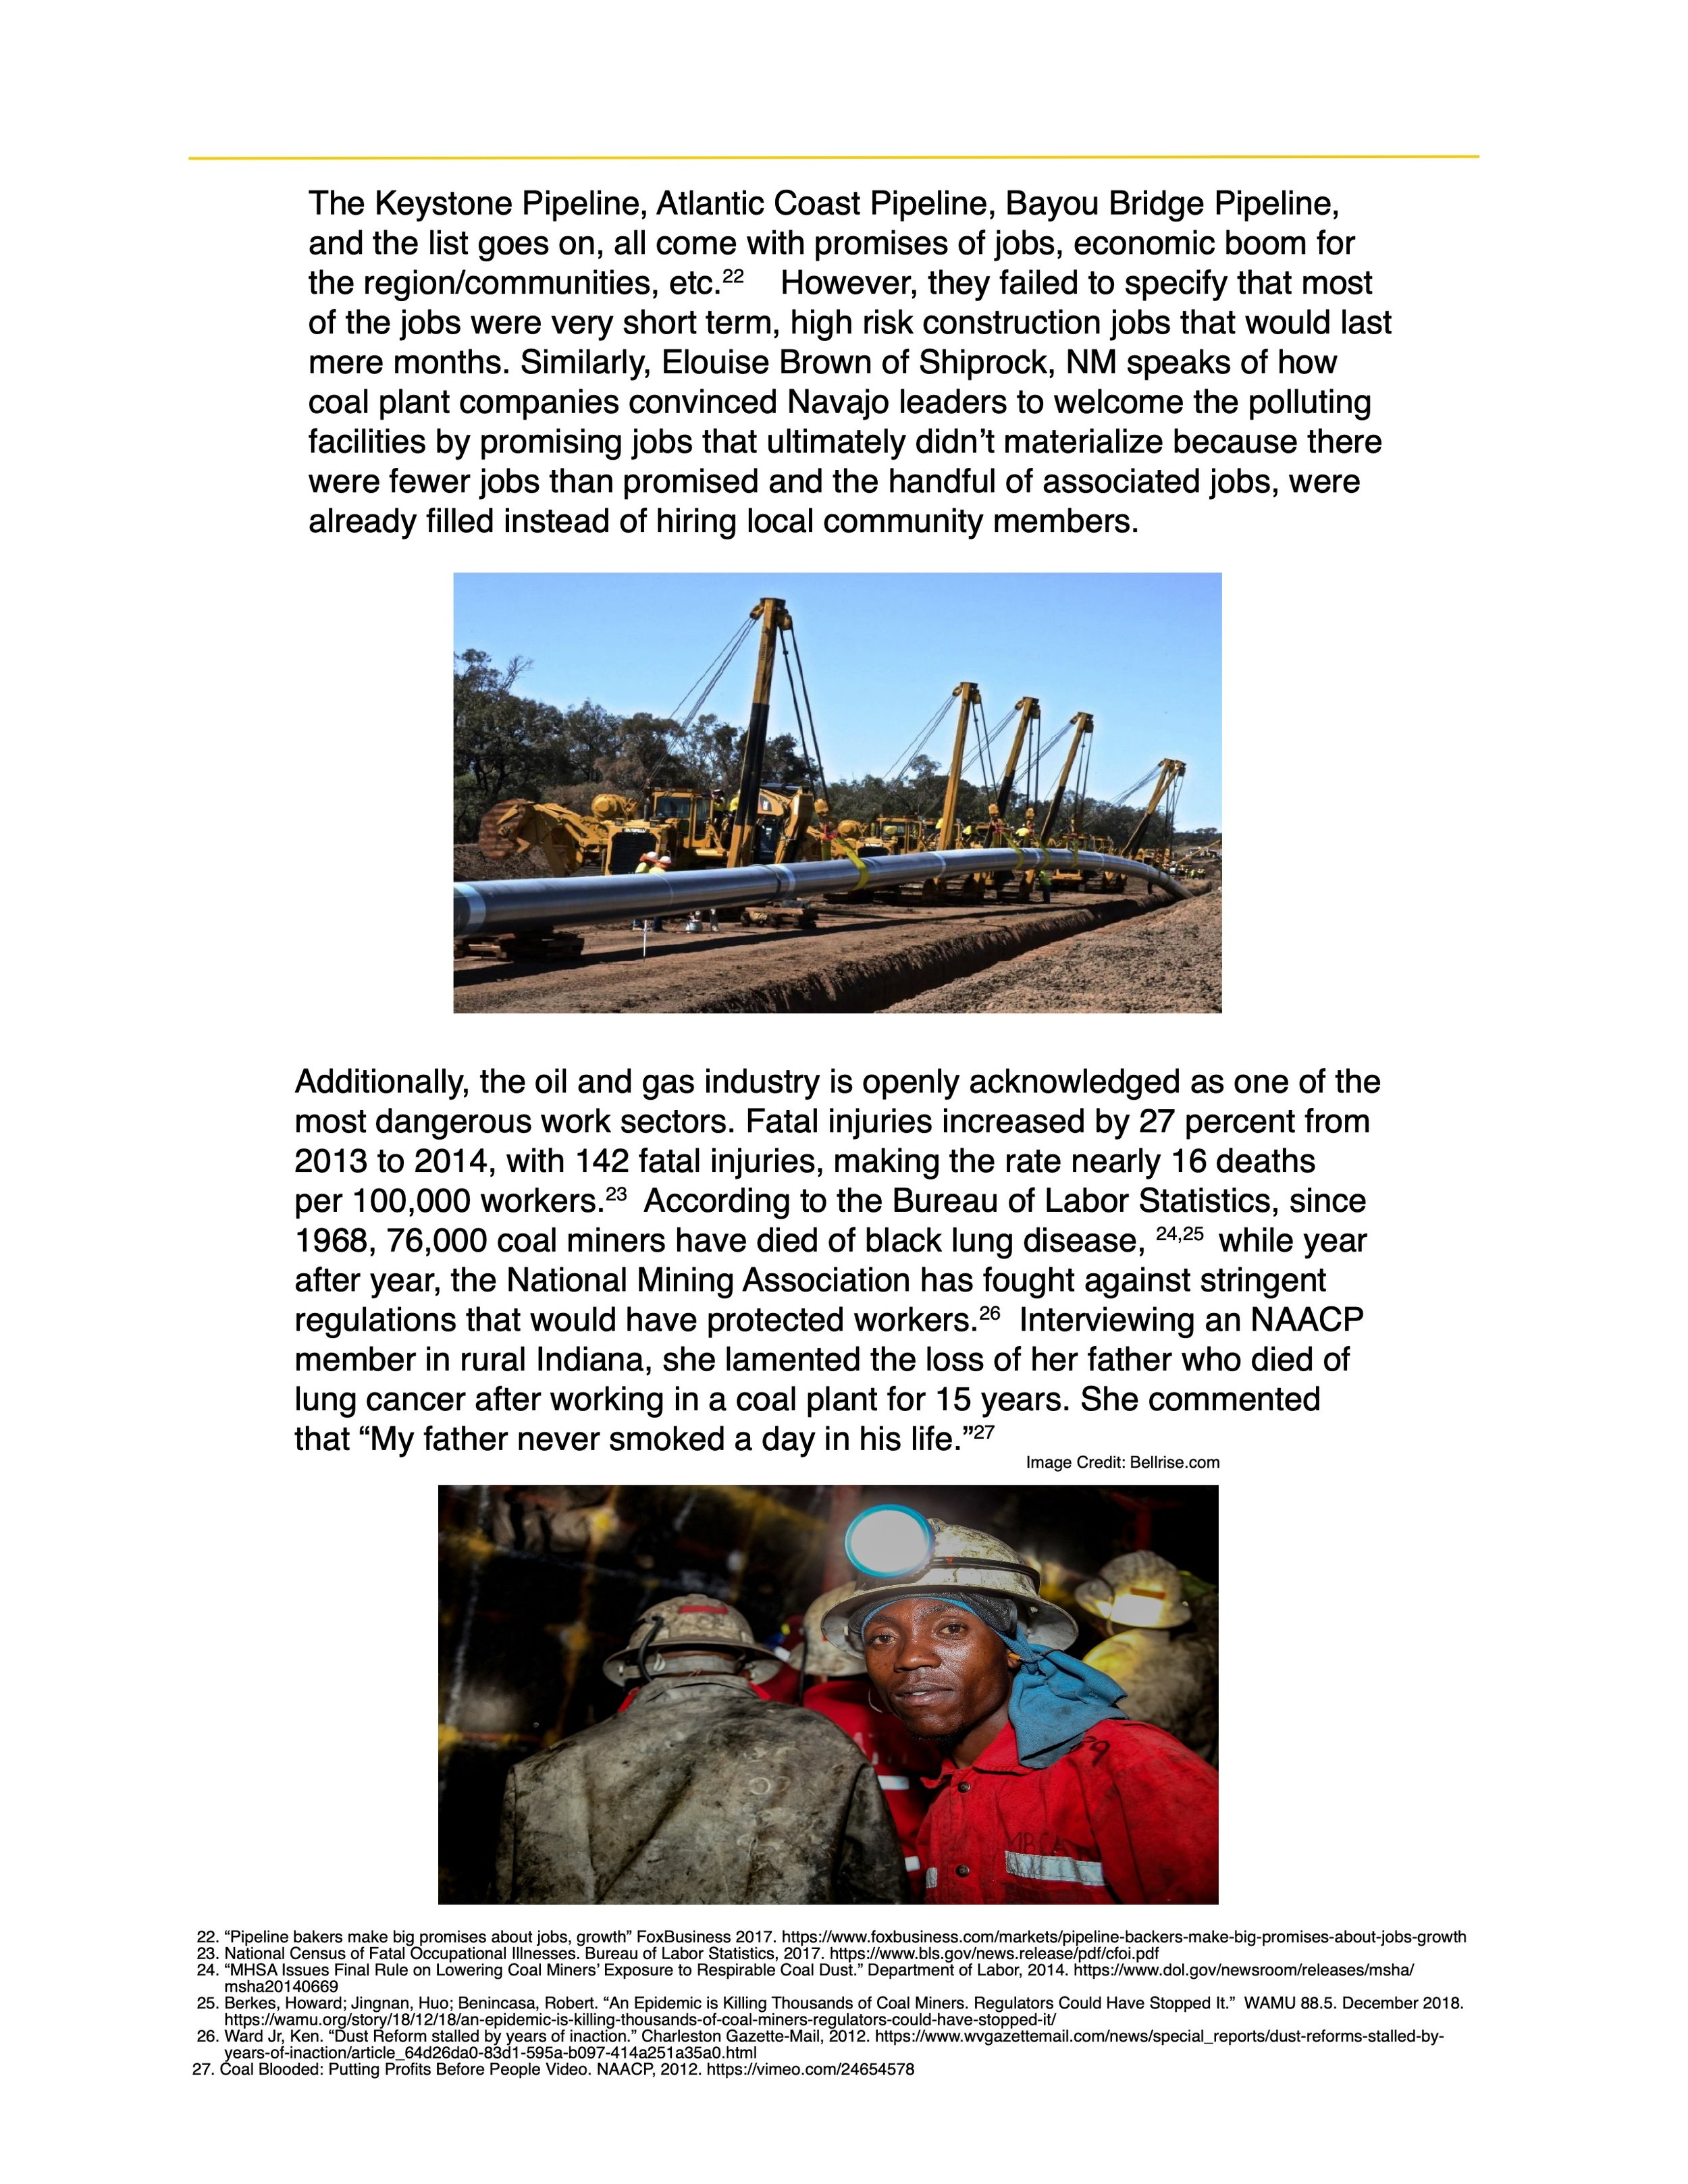 Fossil-Fueled-Foolery-An-Illustrated-Primer-on-the-Top-10-Manipulation-Tactics-of-the-Fossil-Fuel-Industry 11.jpeg